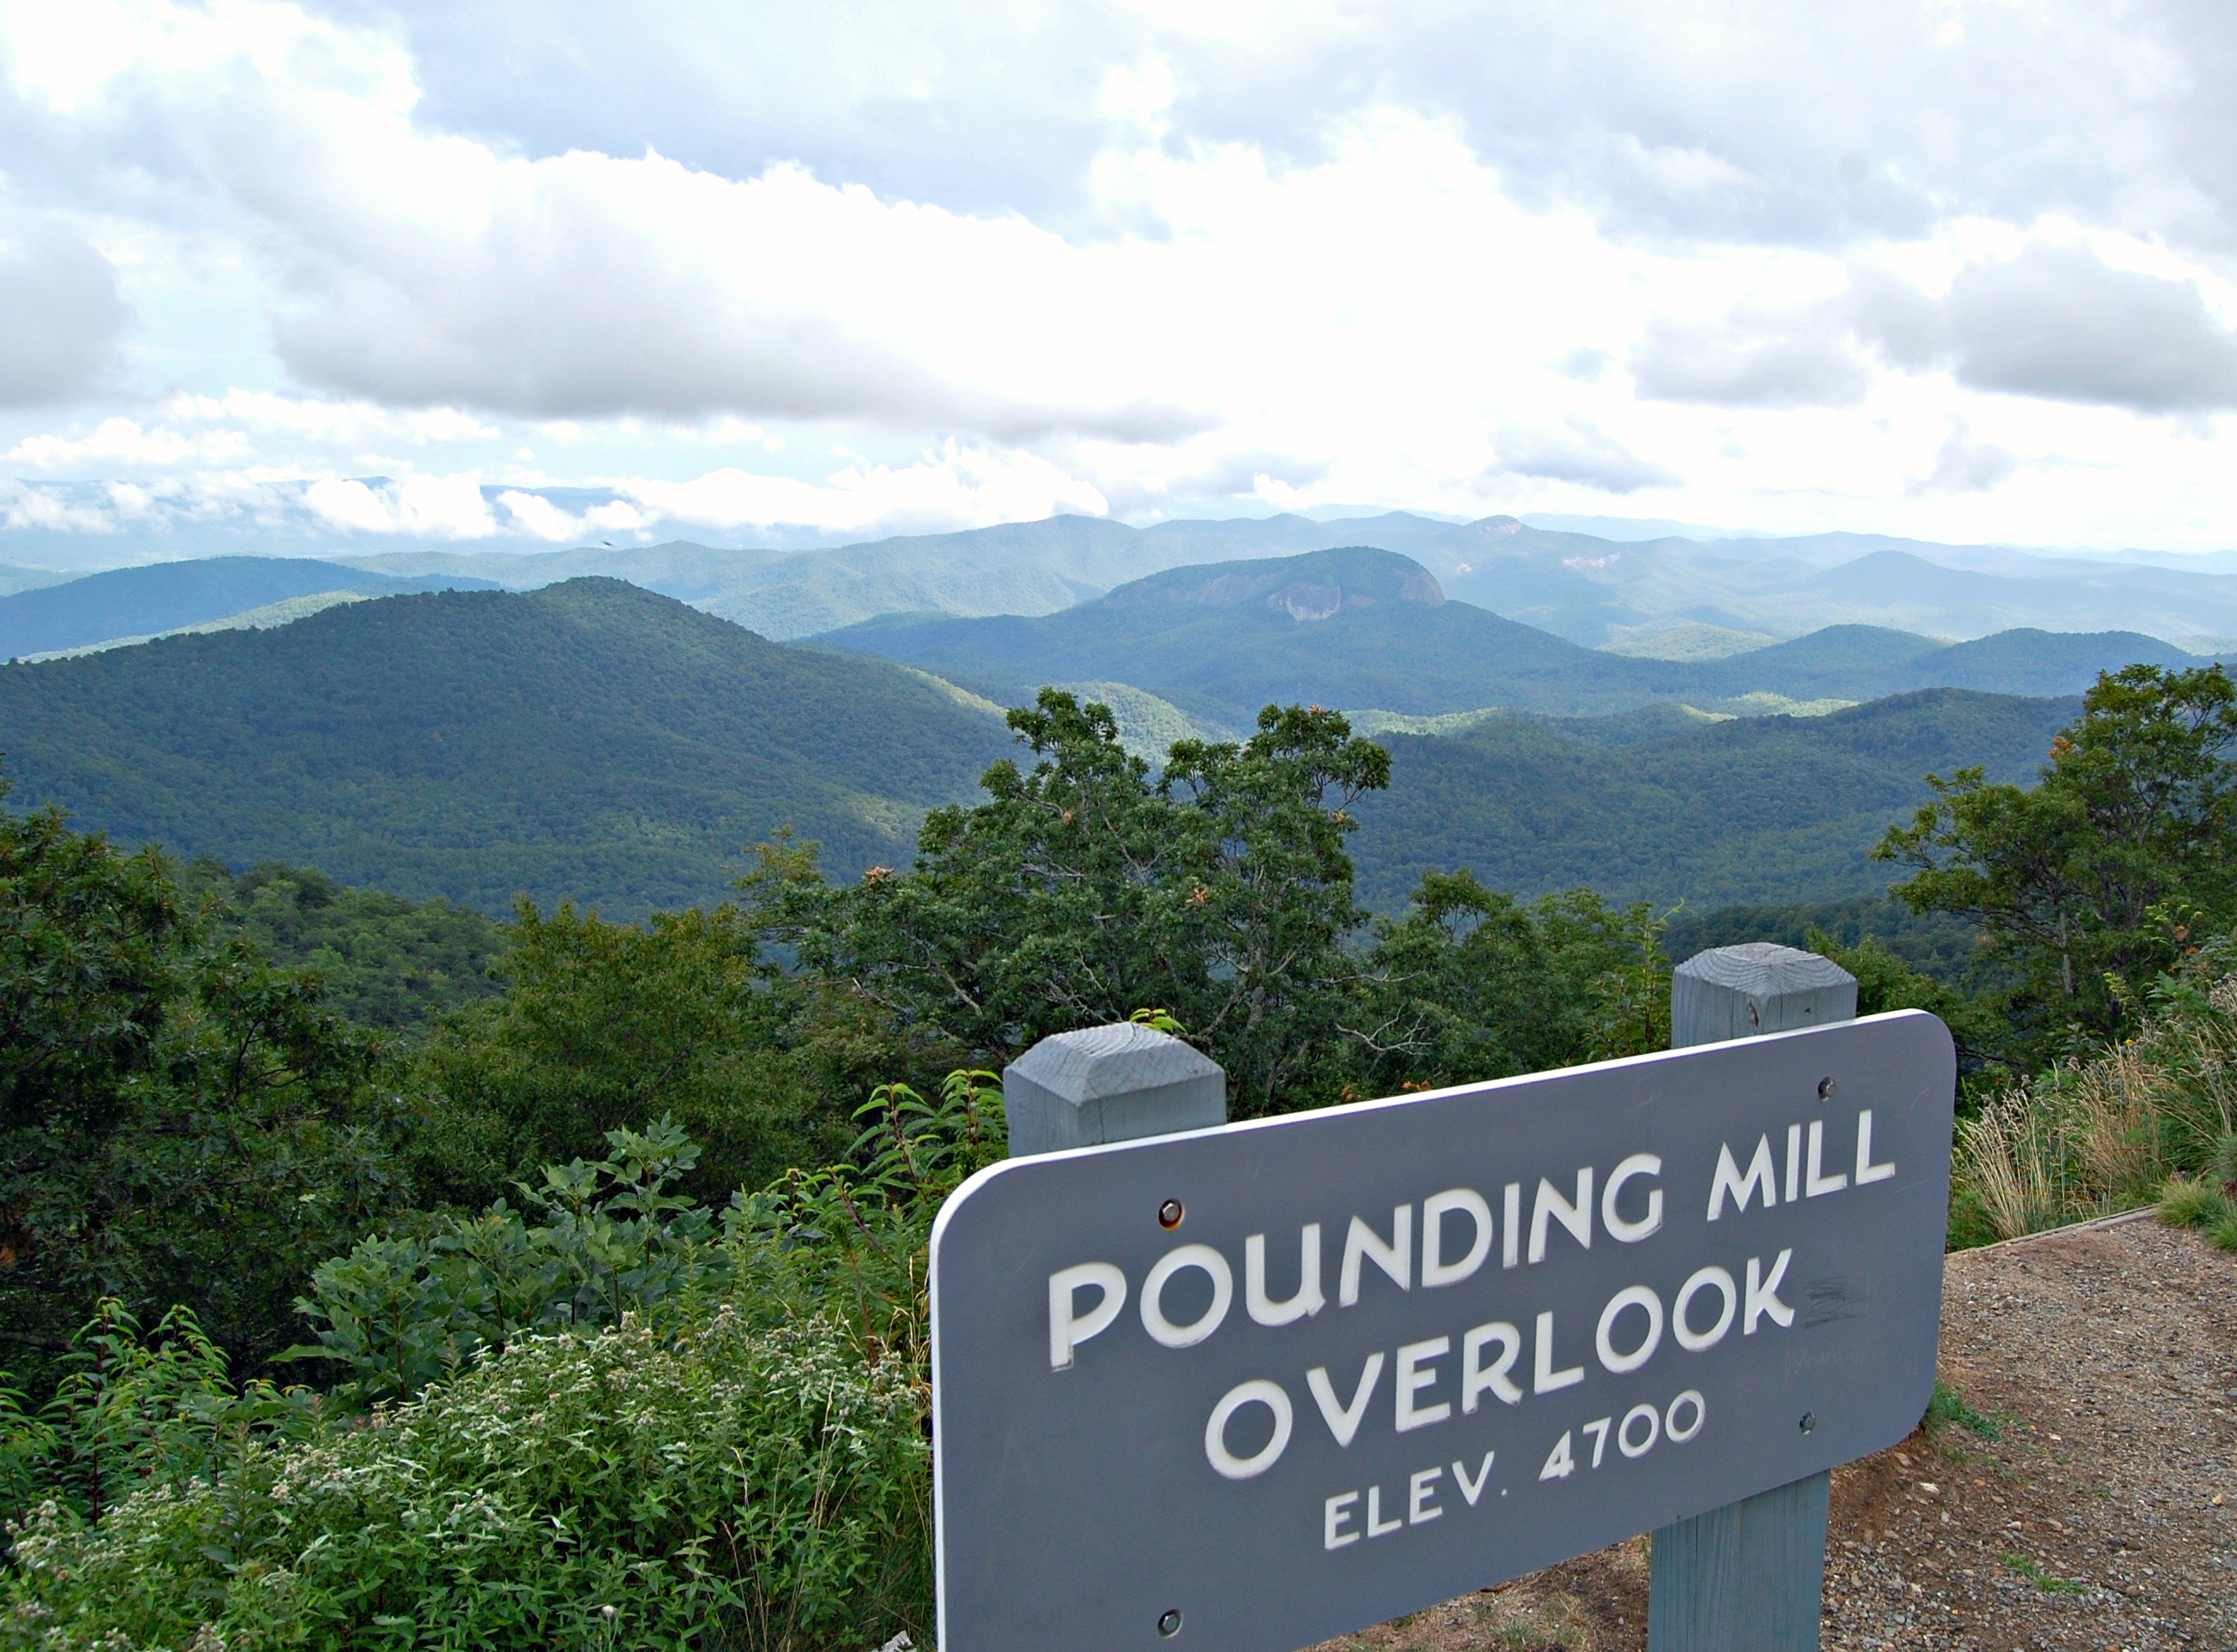 Pounding Mill Overlook, Blue Ridge Parkway | Rosé and Reservations